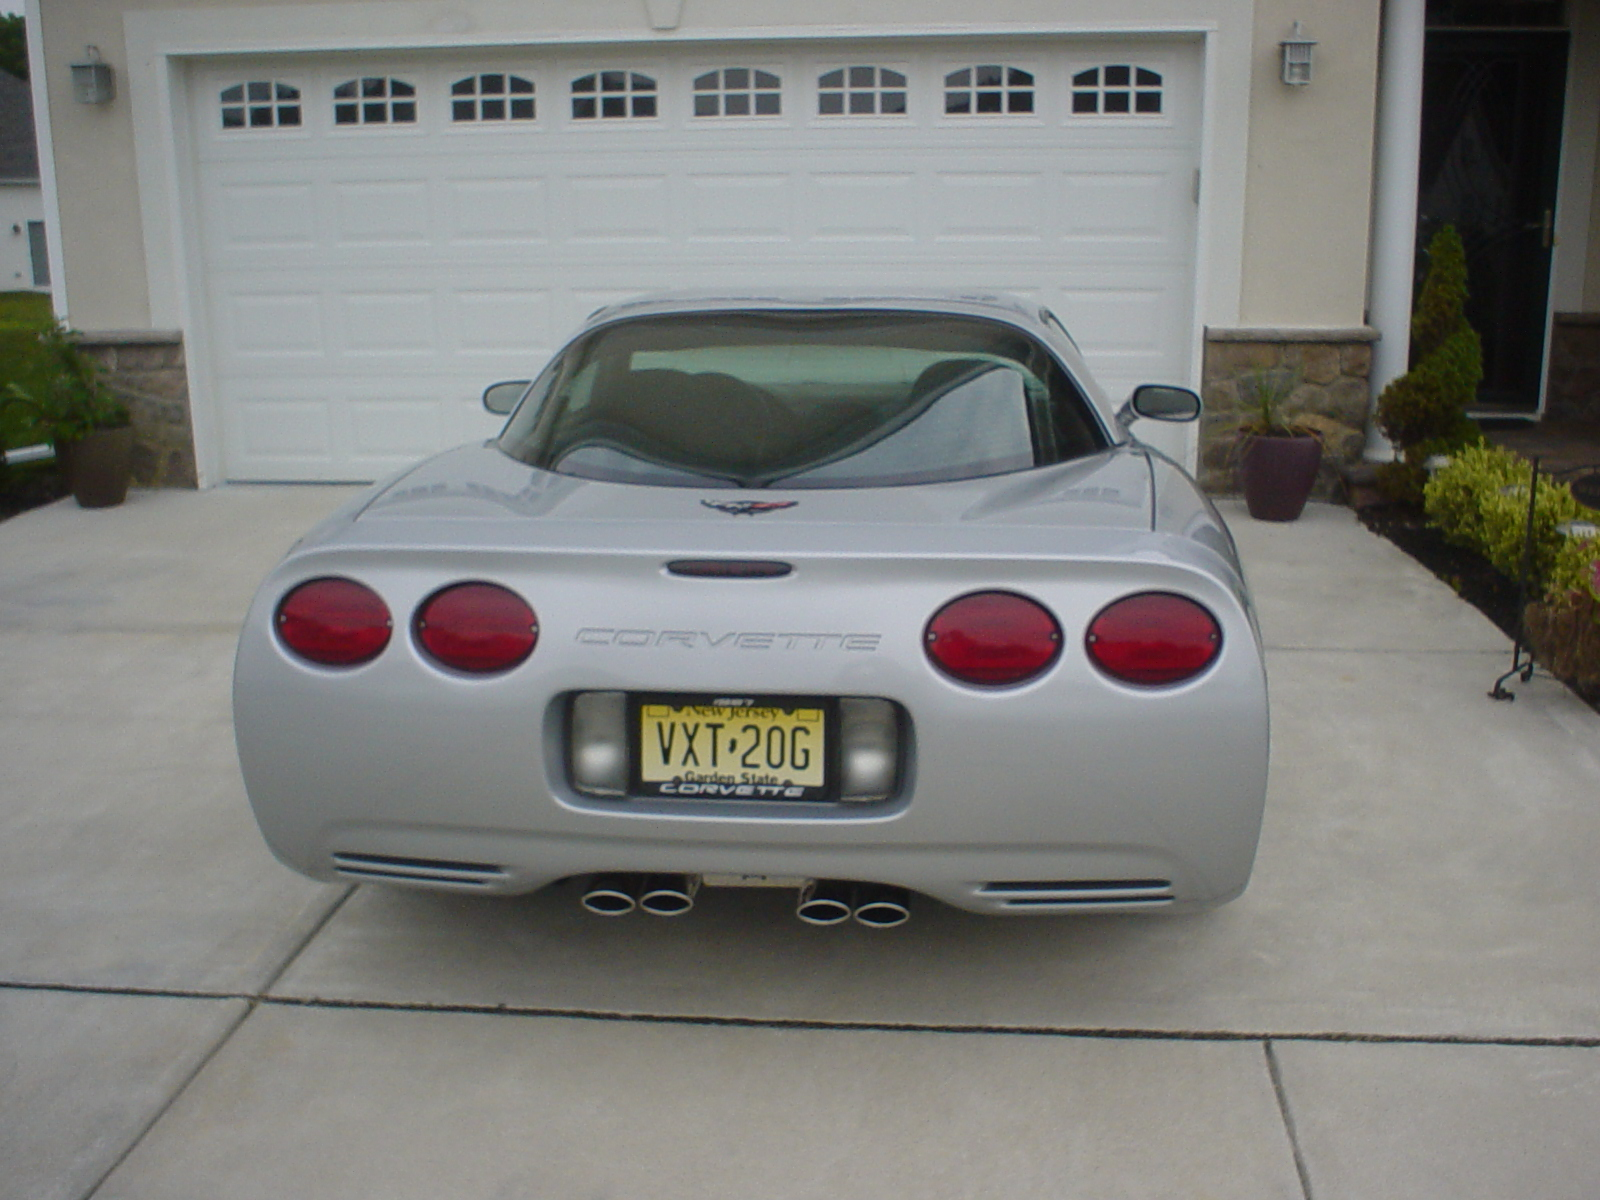 1997 Chevrolet Corvette Coupe, 1997 Chevrolet Corvette 2 Dr STD Hatchback picture, exterior